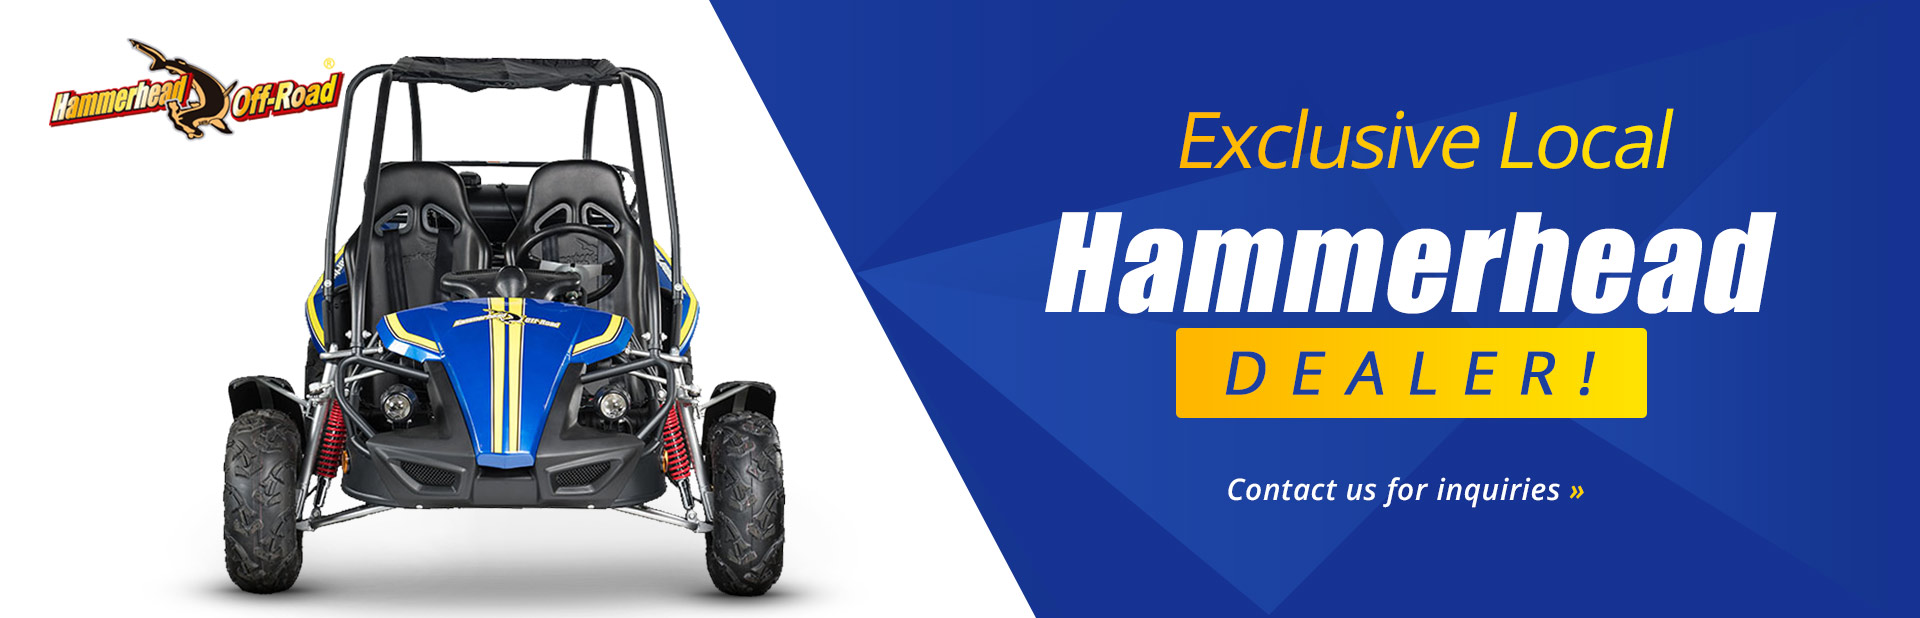 Tri County Polaris is your exclusive local Hammerhead dealer! Contact us for inquiries.